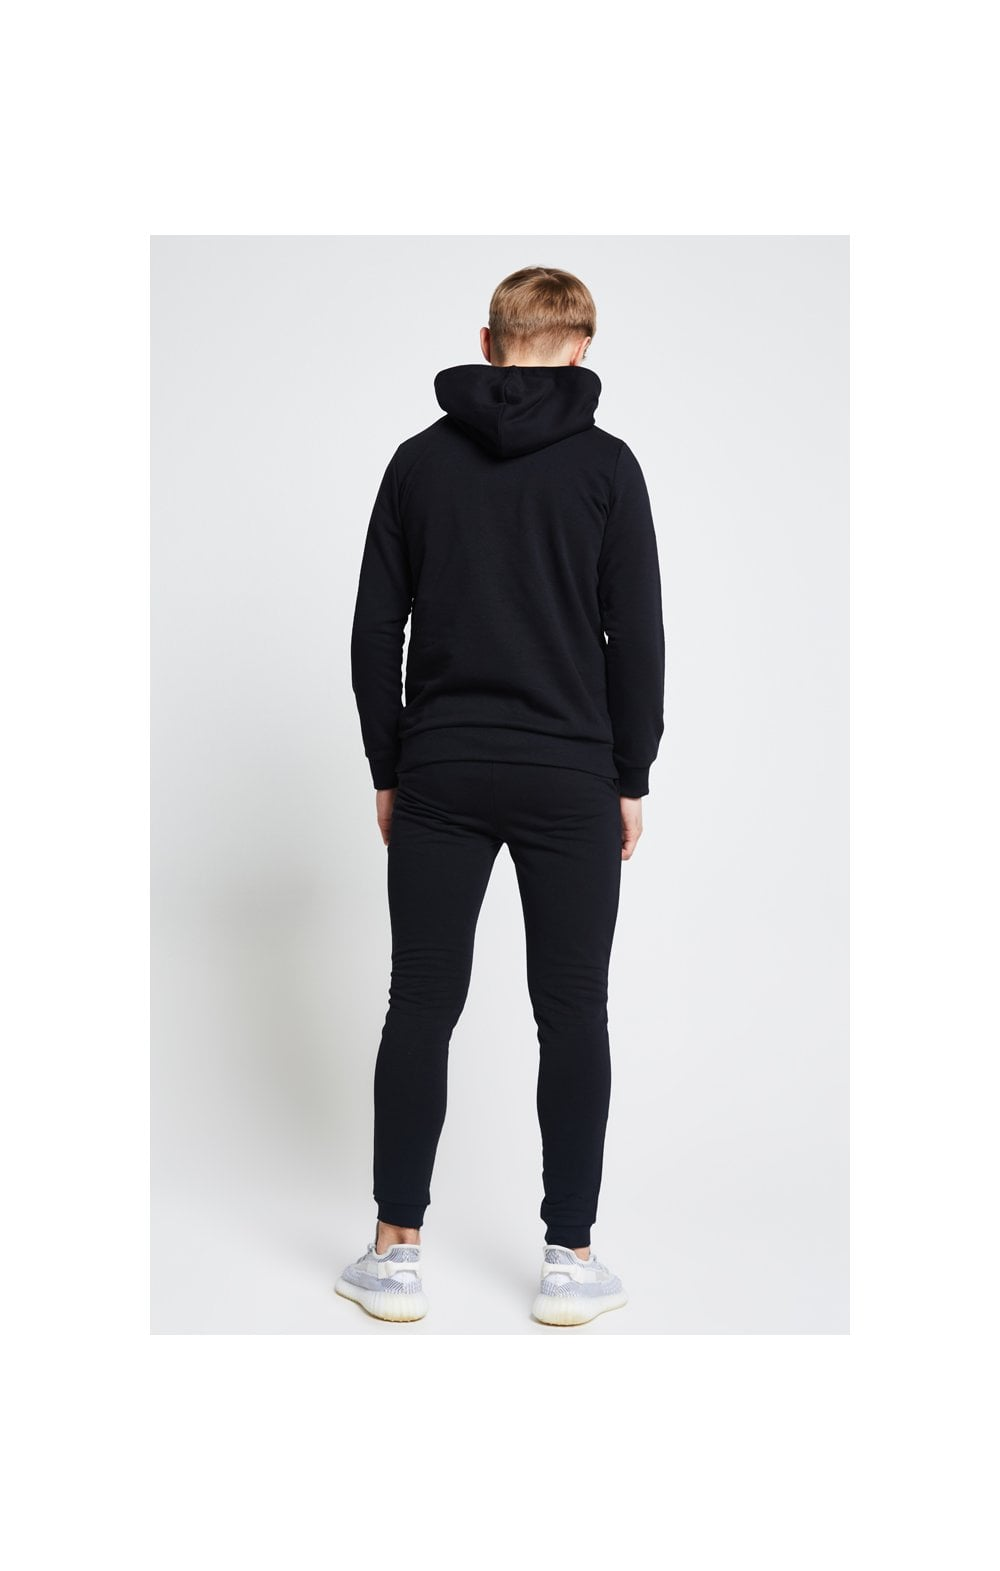 Load image into Gallery viewer, Illusive London Overhead Hoodie - Black (5)